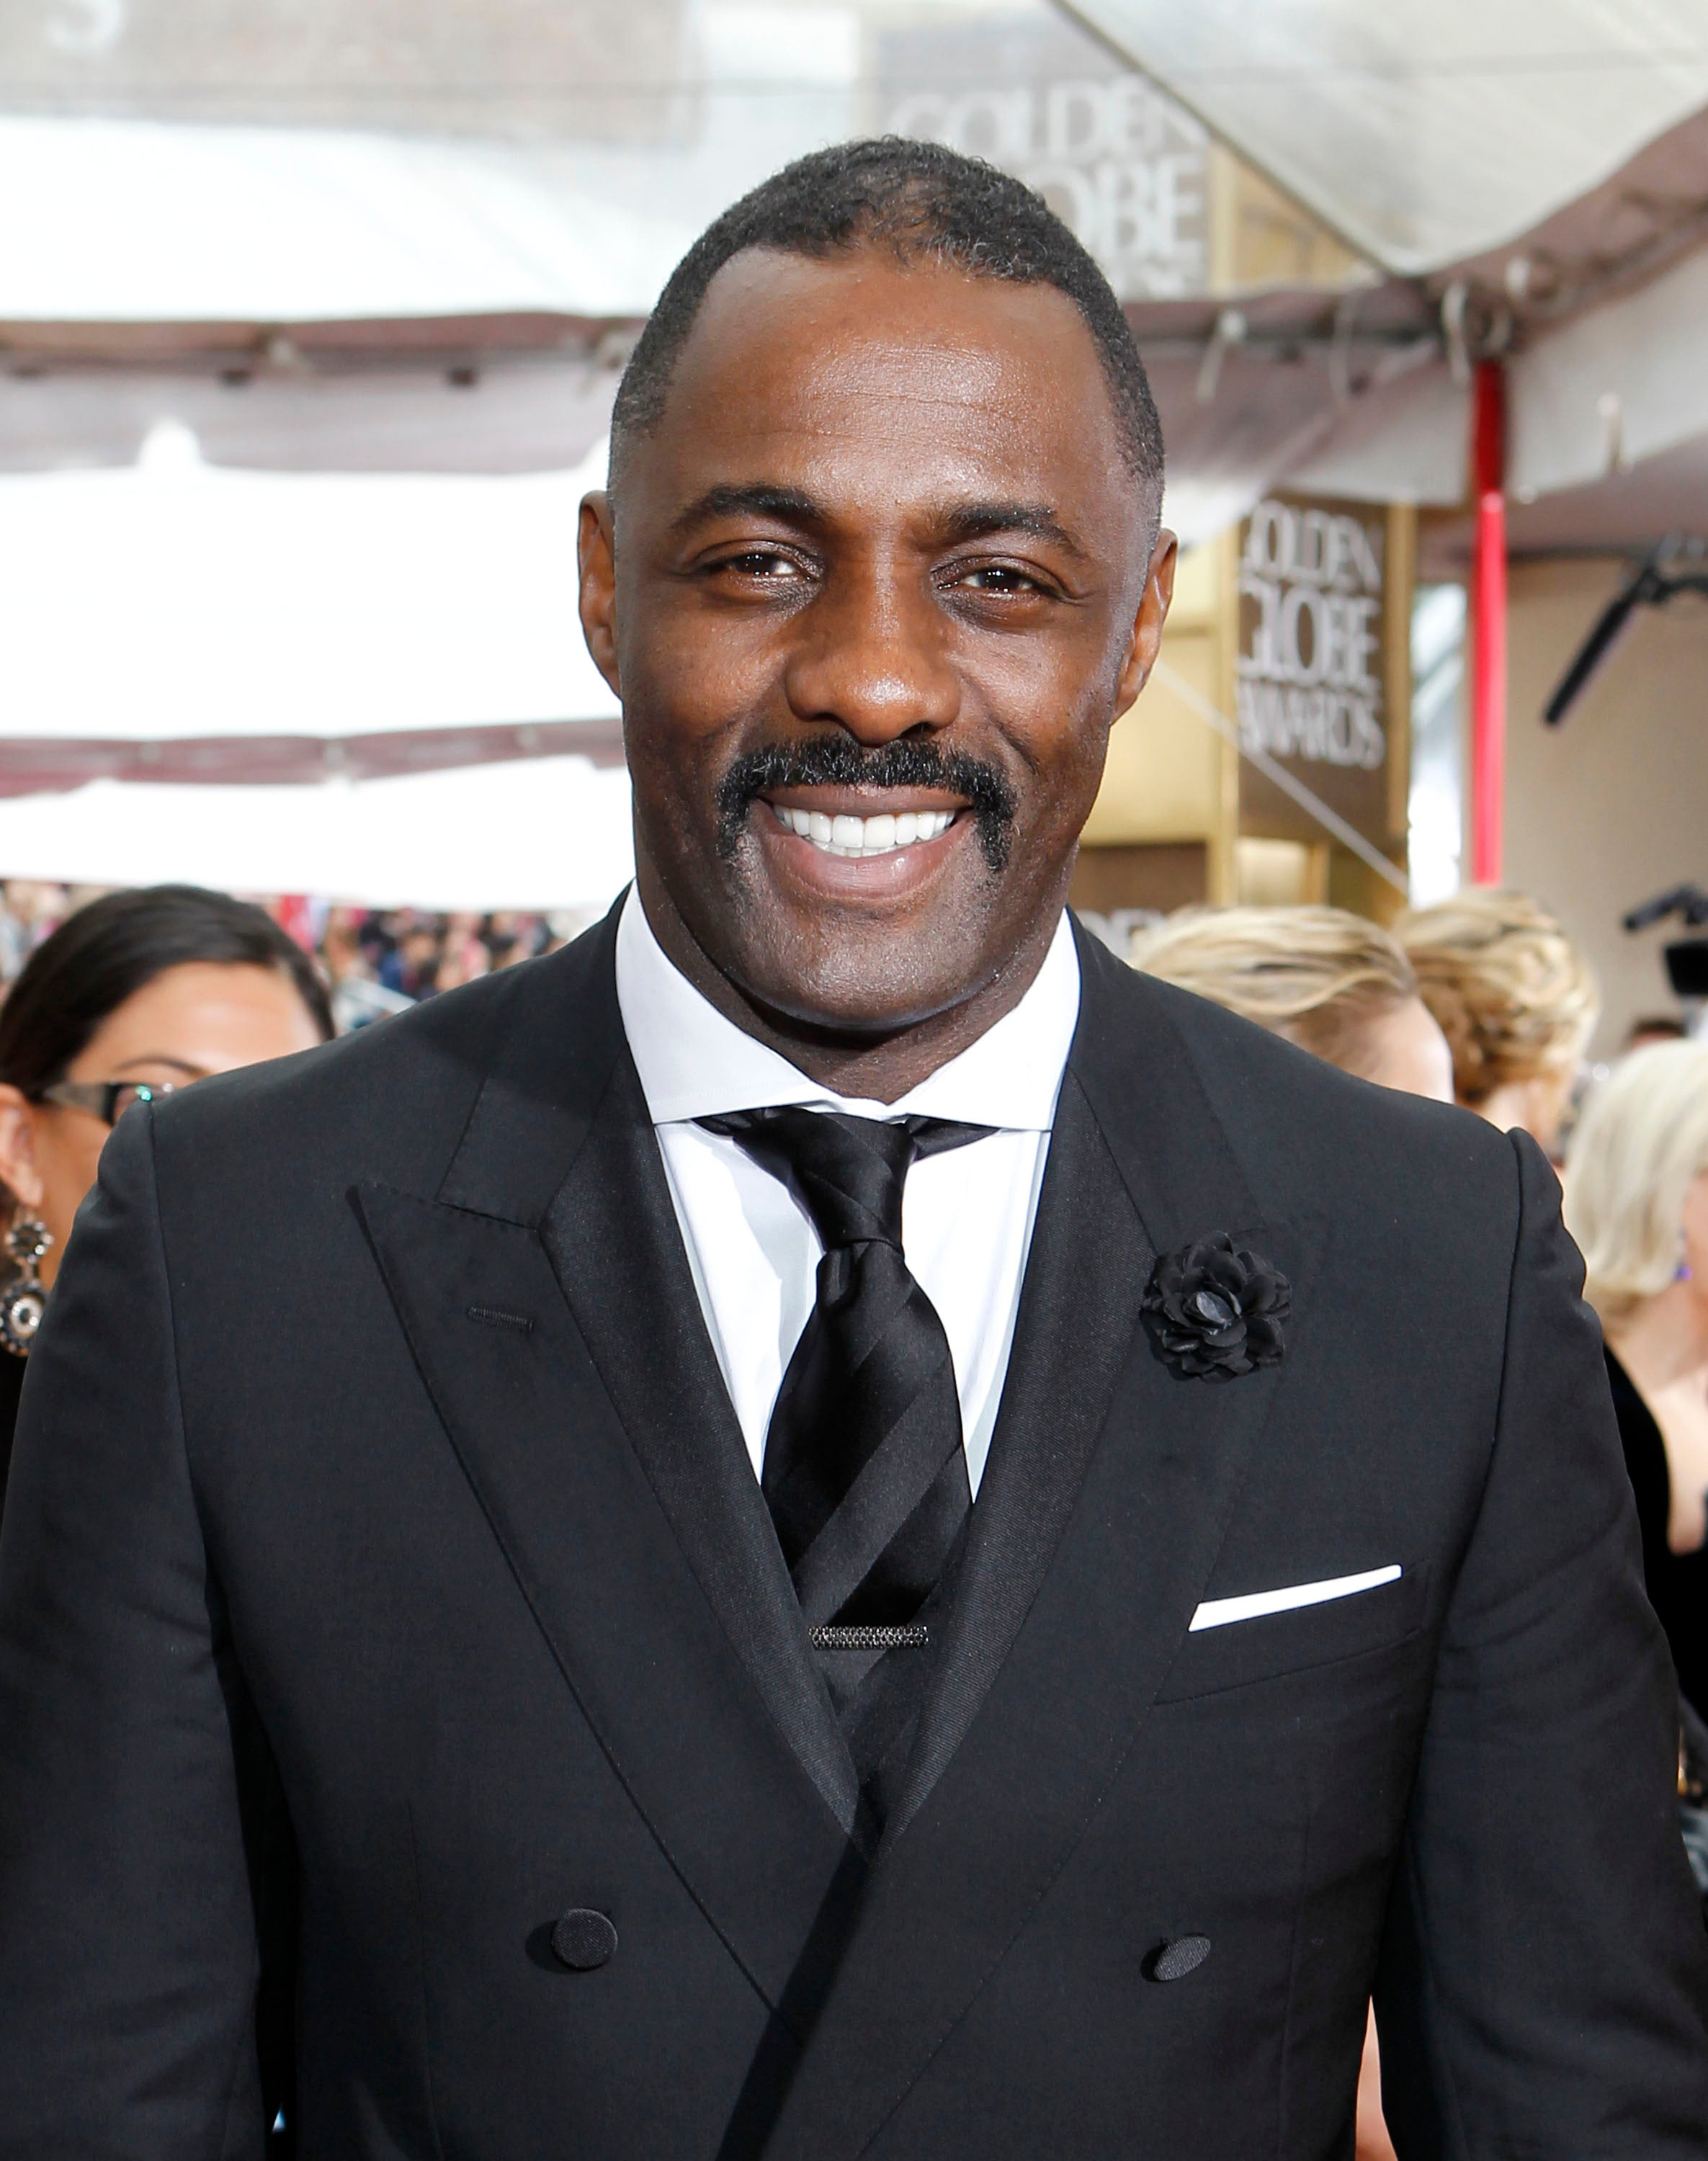 Coffee Talk: Idris Elba Officially Confirmed to Play Nelson Mandela in a Biopic